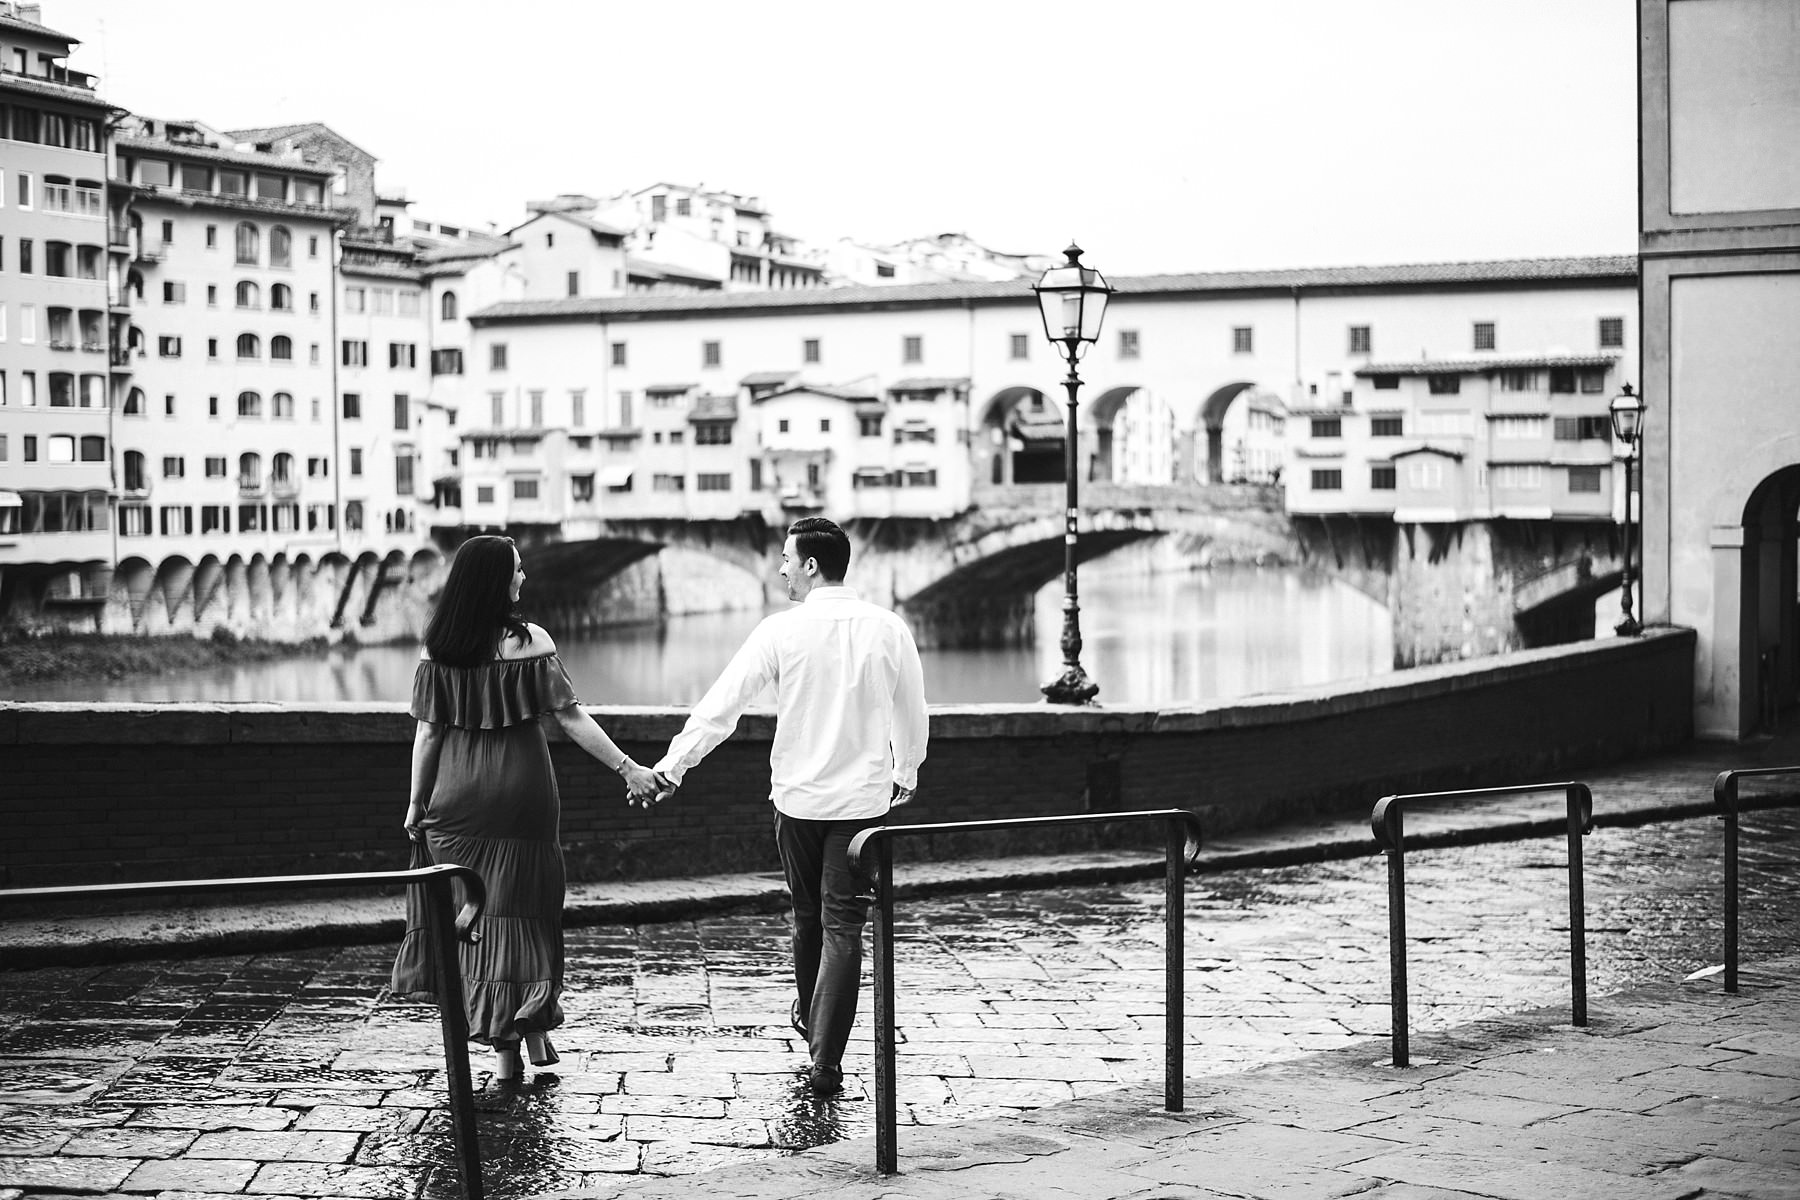 Lovely couple candid photo near Old Bridge in the early morning with anyone around. Sunrise photo session is the best to enjoy the walk tour experience photo shoot